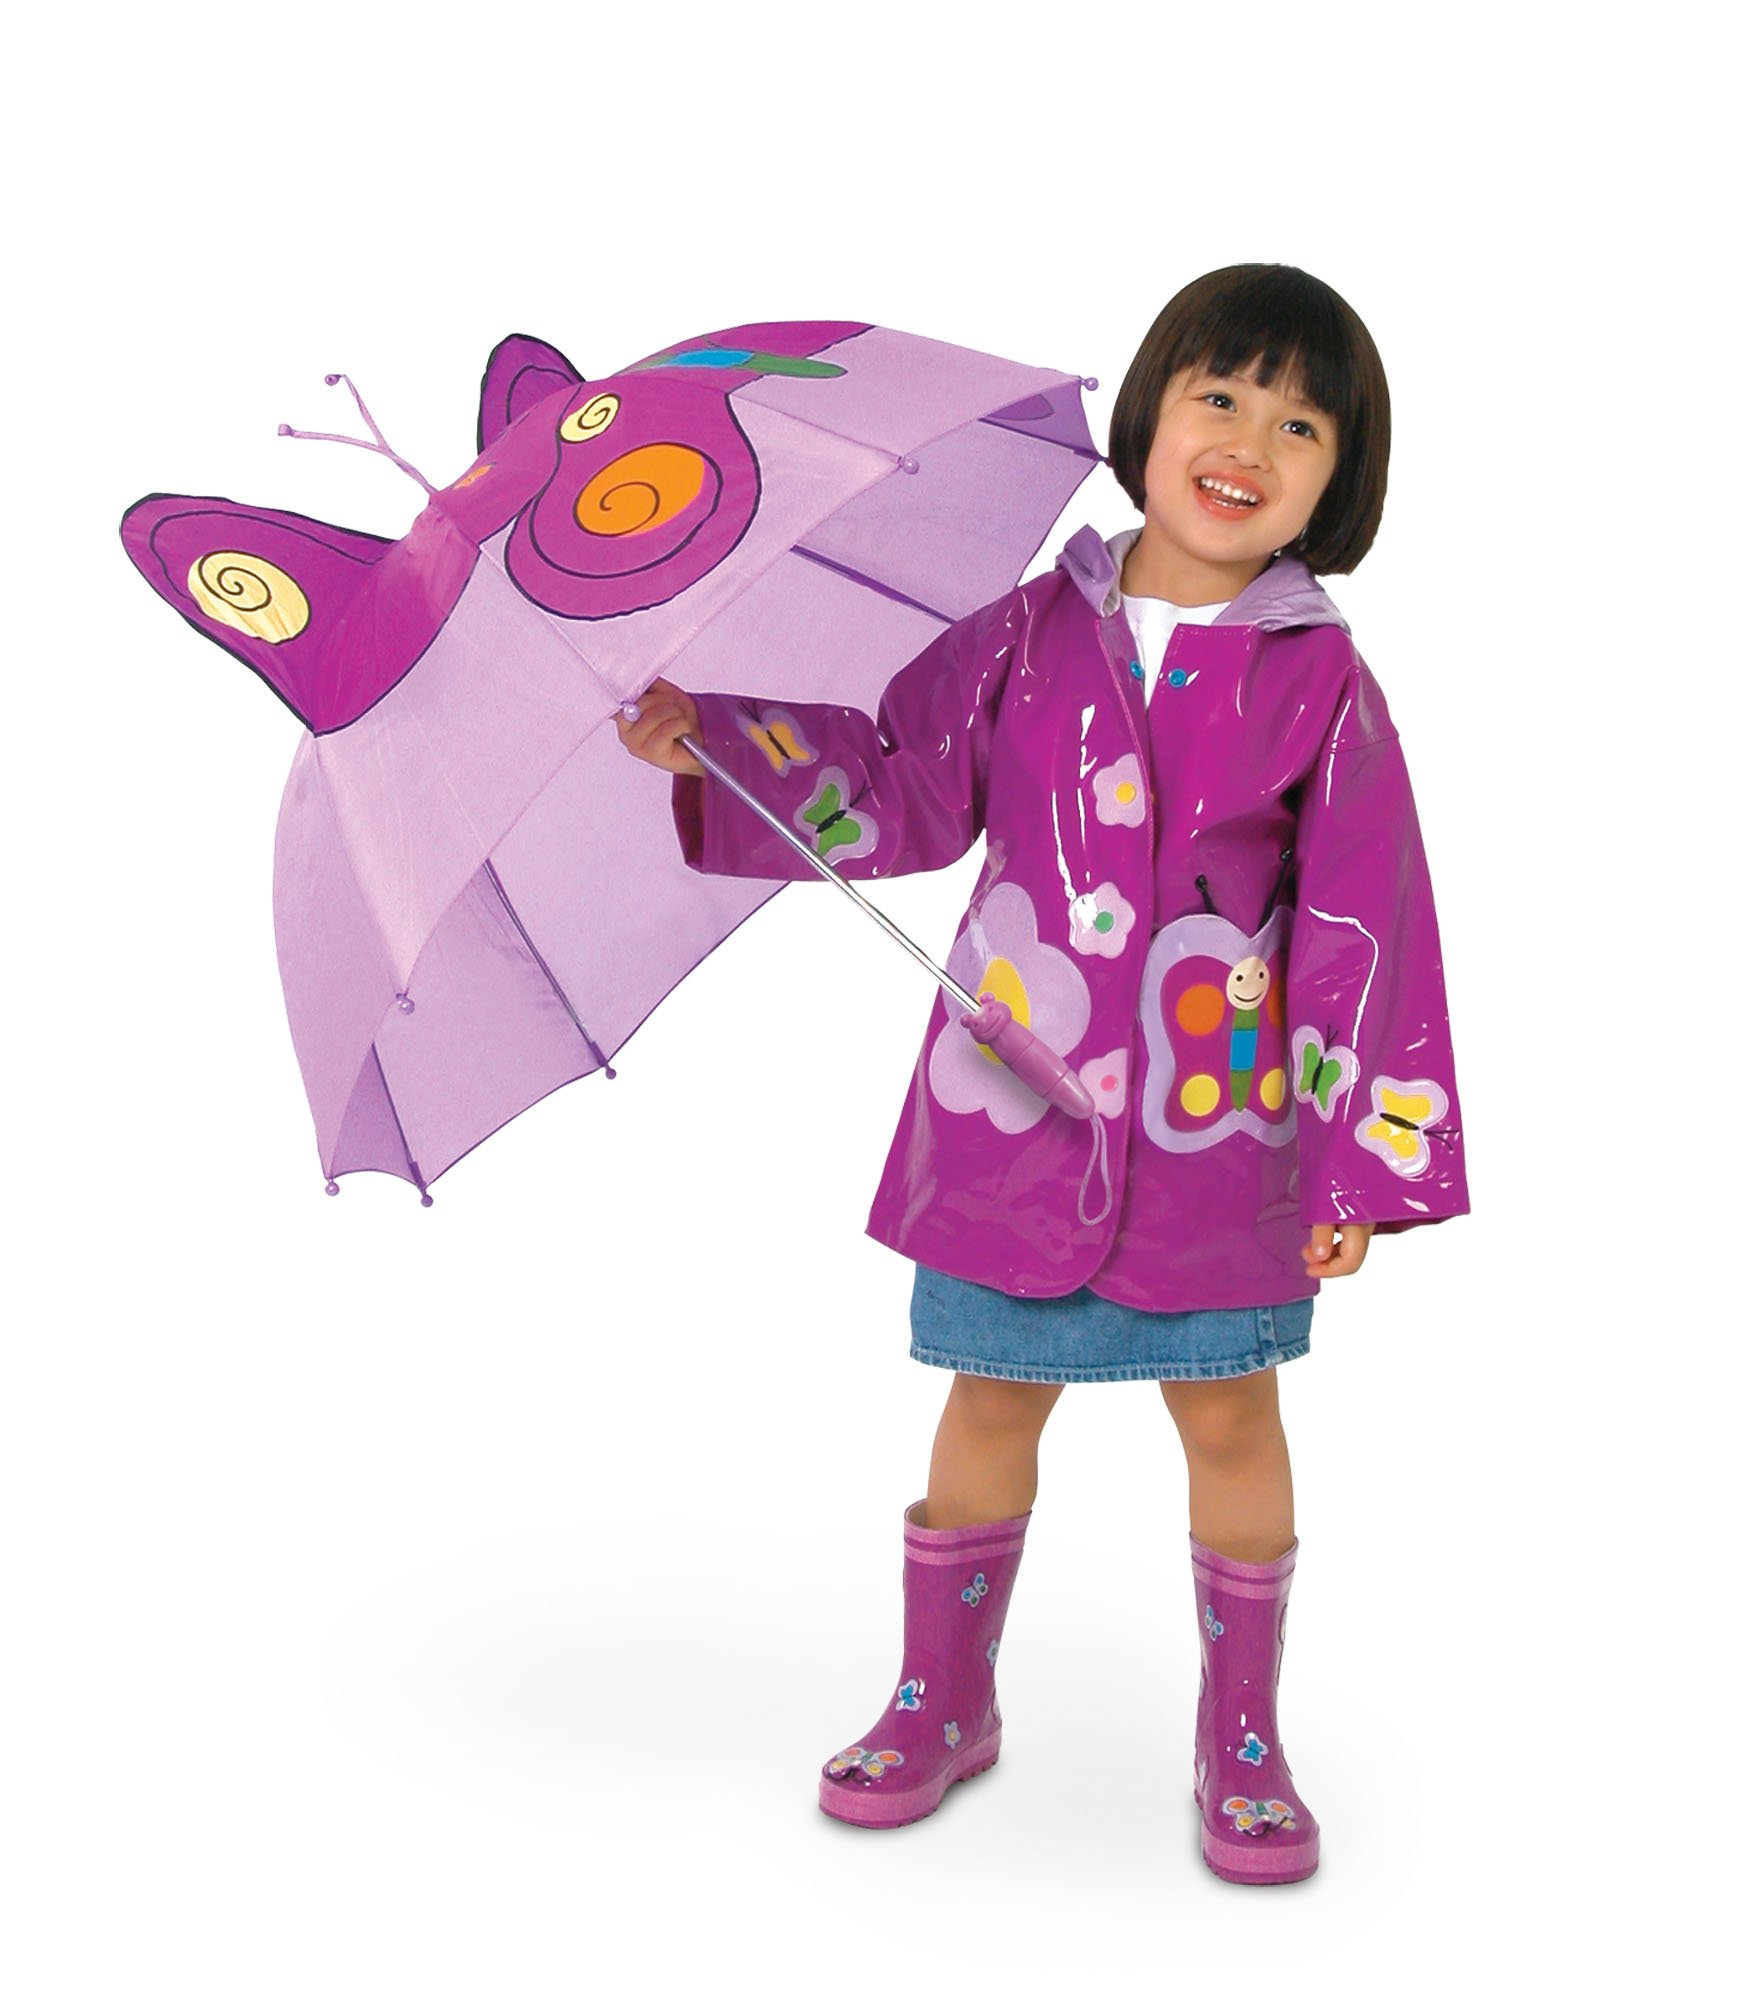 Kidorable Purple Butterfly Umbrella for Girls w/Fun Butterfly Handle, Pop-Up Wings, Antennae, 1 Size by Kidorable (Image #4)